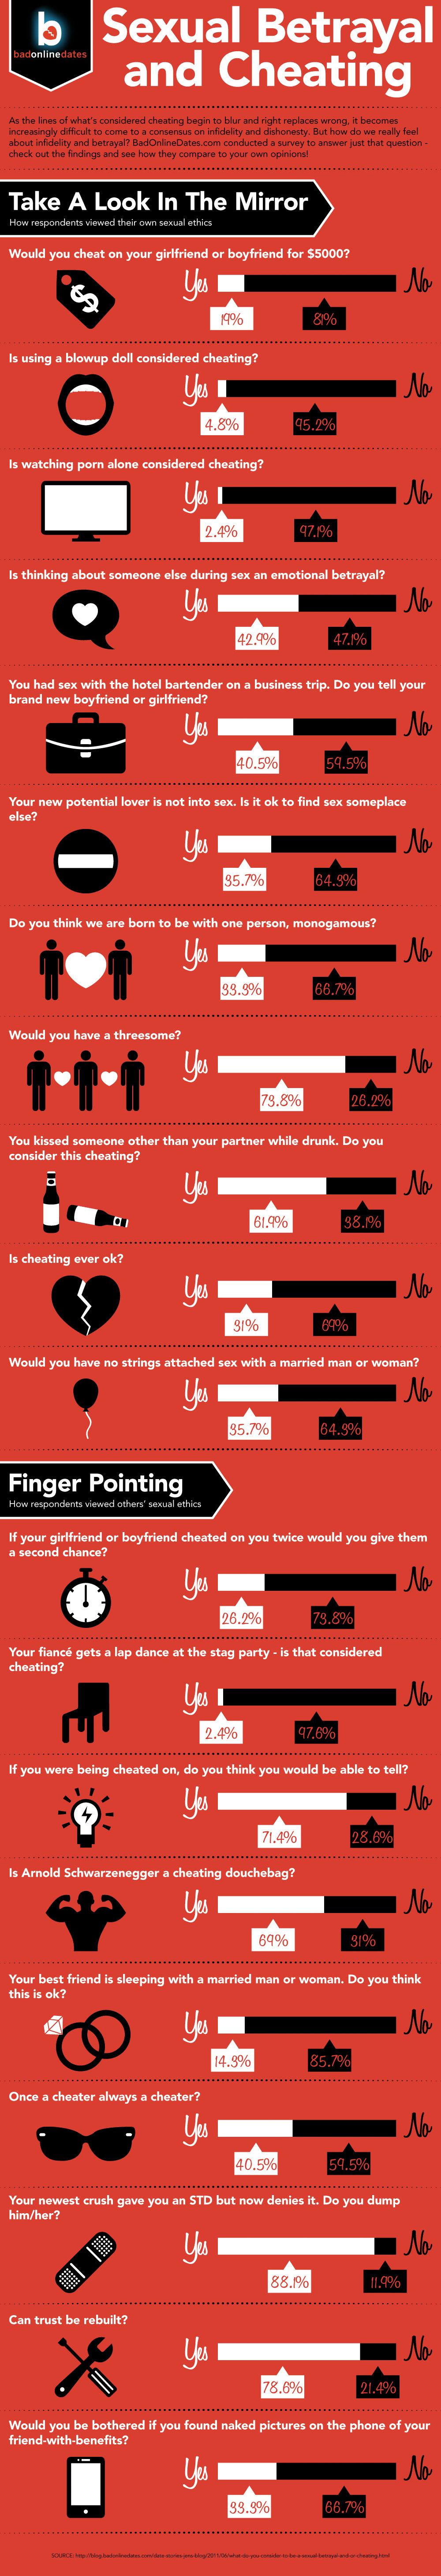 Sexual-Betrayal-And-Cheating-infographic